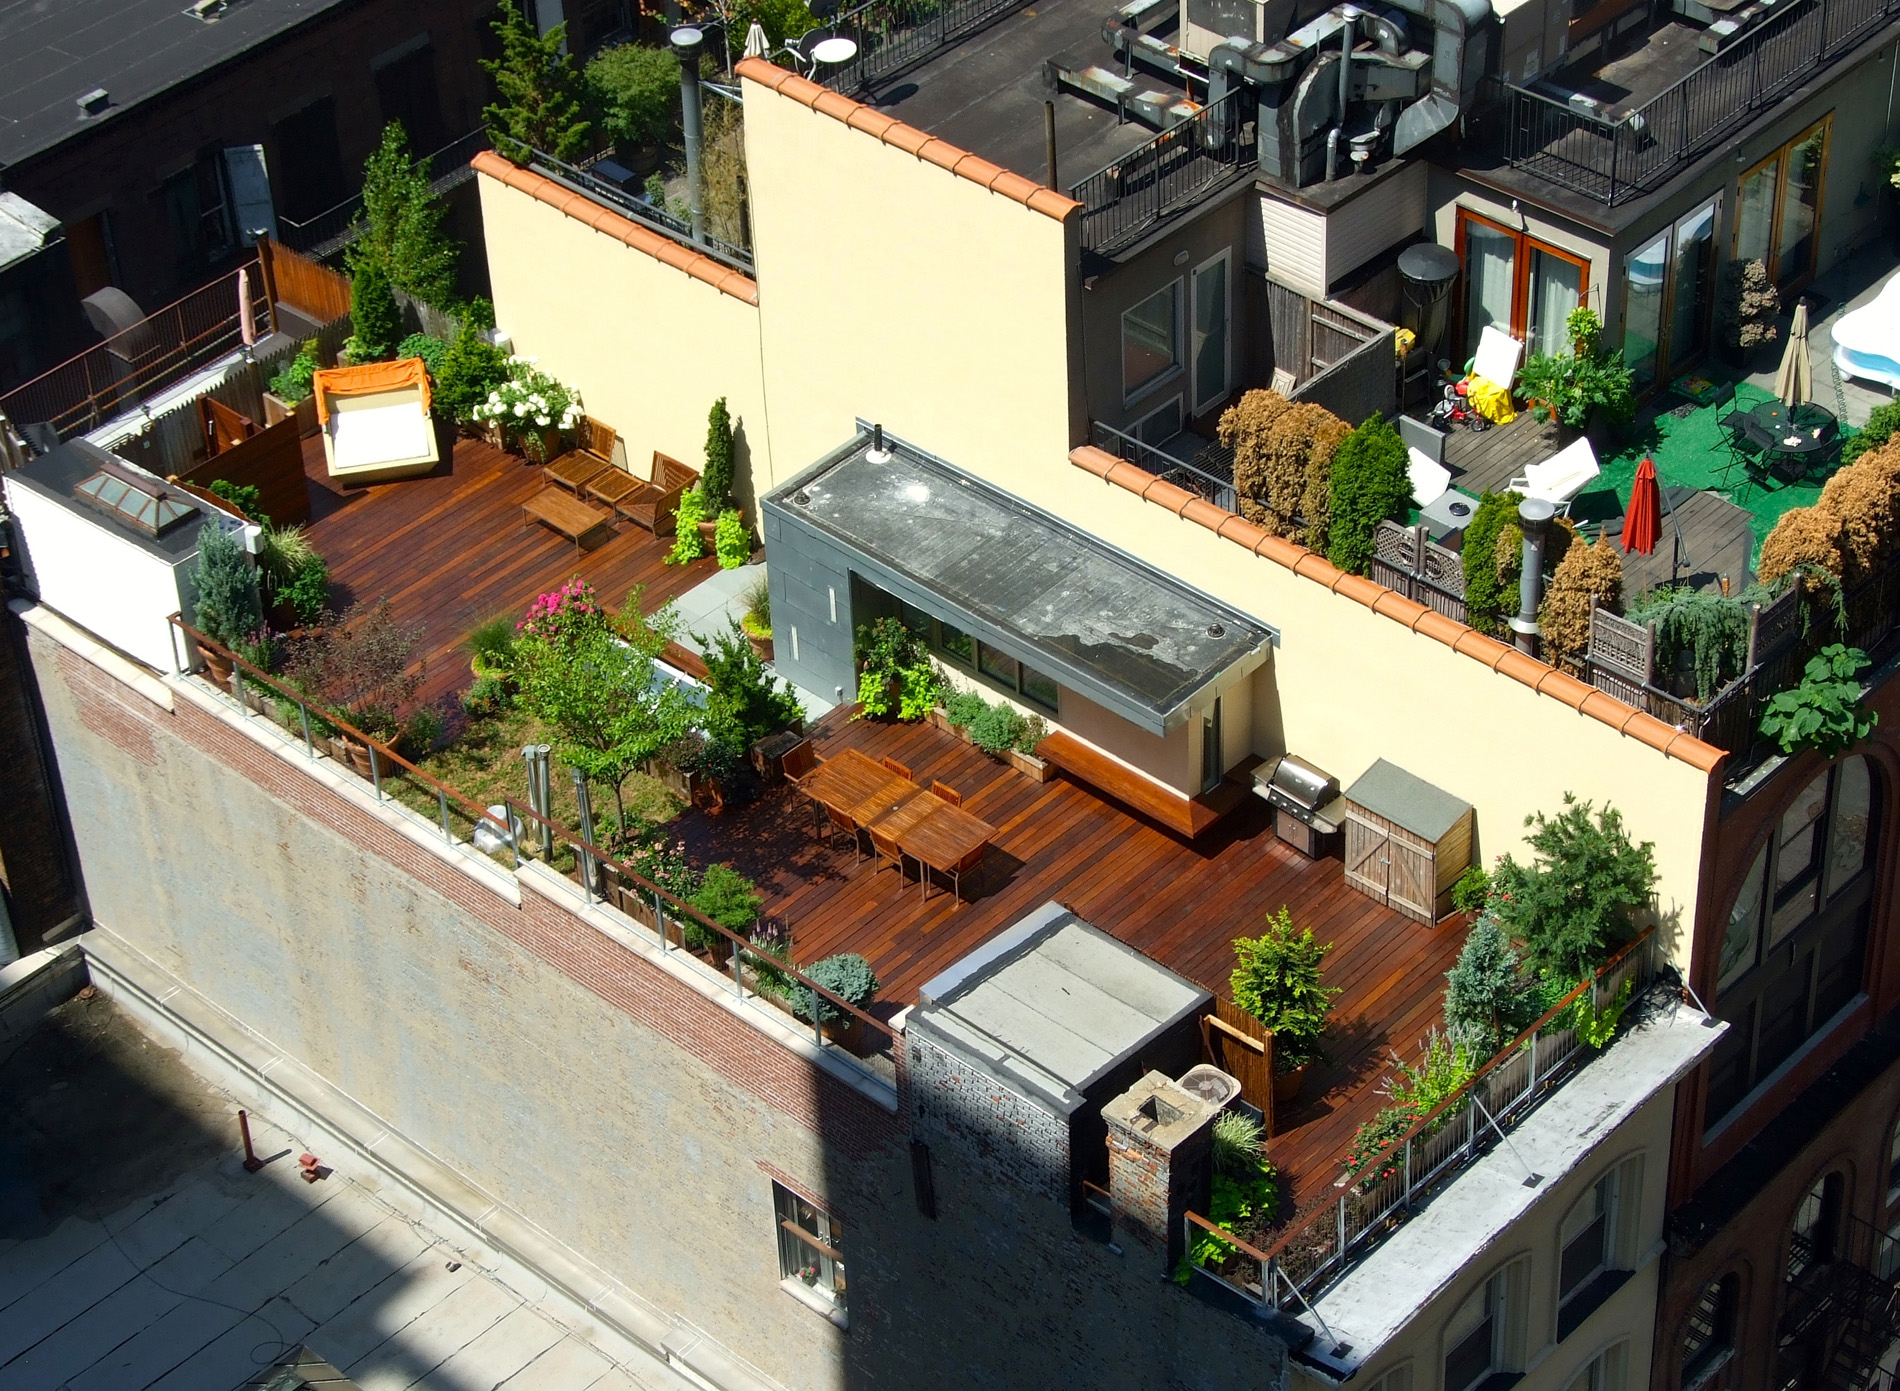 Rooftop terrace decks all decked out for Roof deck design